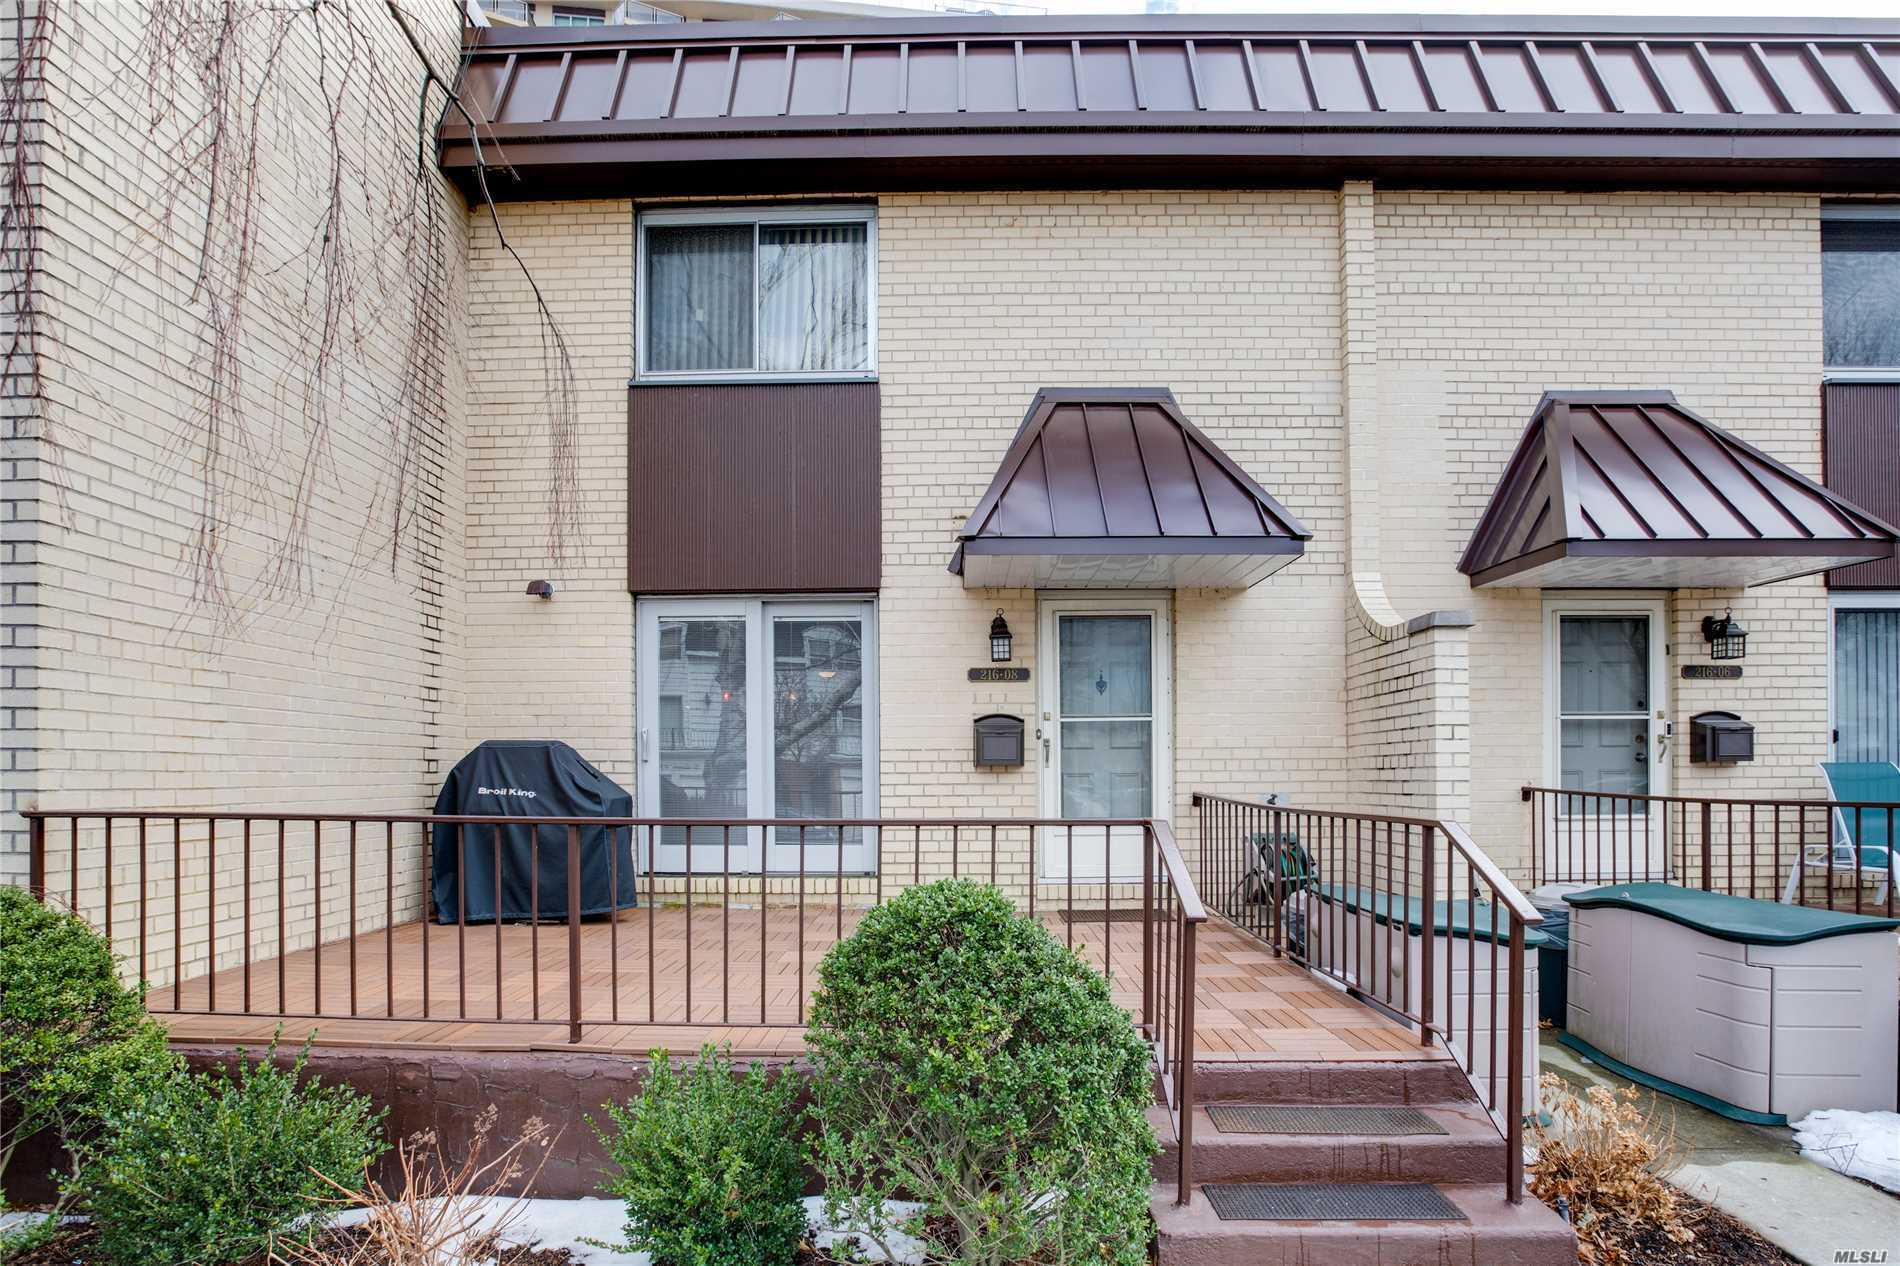 Desirable & Rare Americana Triplex In Bayside. 3 Br, 2 1/2 Bath. Designer Showplace W/ Chef's Kitchen, S.S. Kitchen Aid Appl., Dbl. Oven, Stove Top Grill, Bar Sink, Heated Porcelain Tile Floor & Pella Sliding Doors. Full Fin. Bsmt W/ Laundry, Custom Closets & Built Ins Throughout. Front Patio W/ Custom Gas Installed Bbq. 24 Hr. Doorman/Concierge, Alarm Central Station, Pool, Gym, Tennis & Shopping Arcade. Dog Friendly! Base Maintenance $2, 171.82+Elect. $181.48+Amversev $100=$2, 453.30.